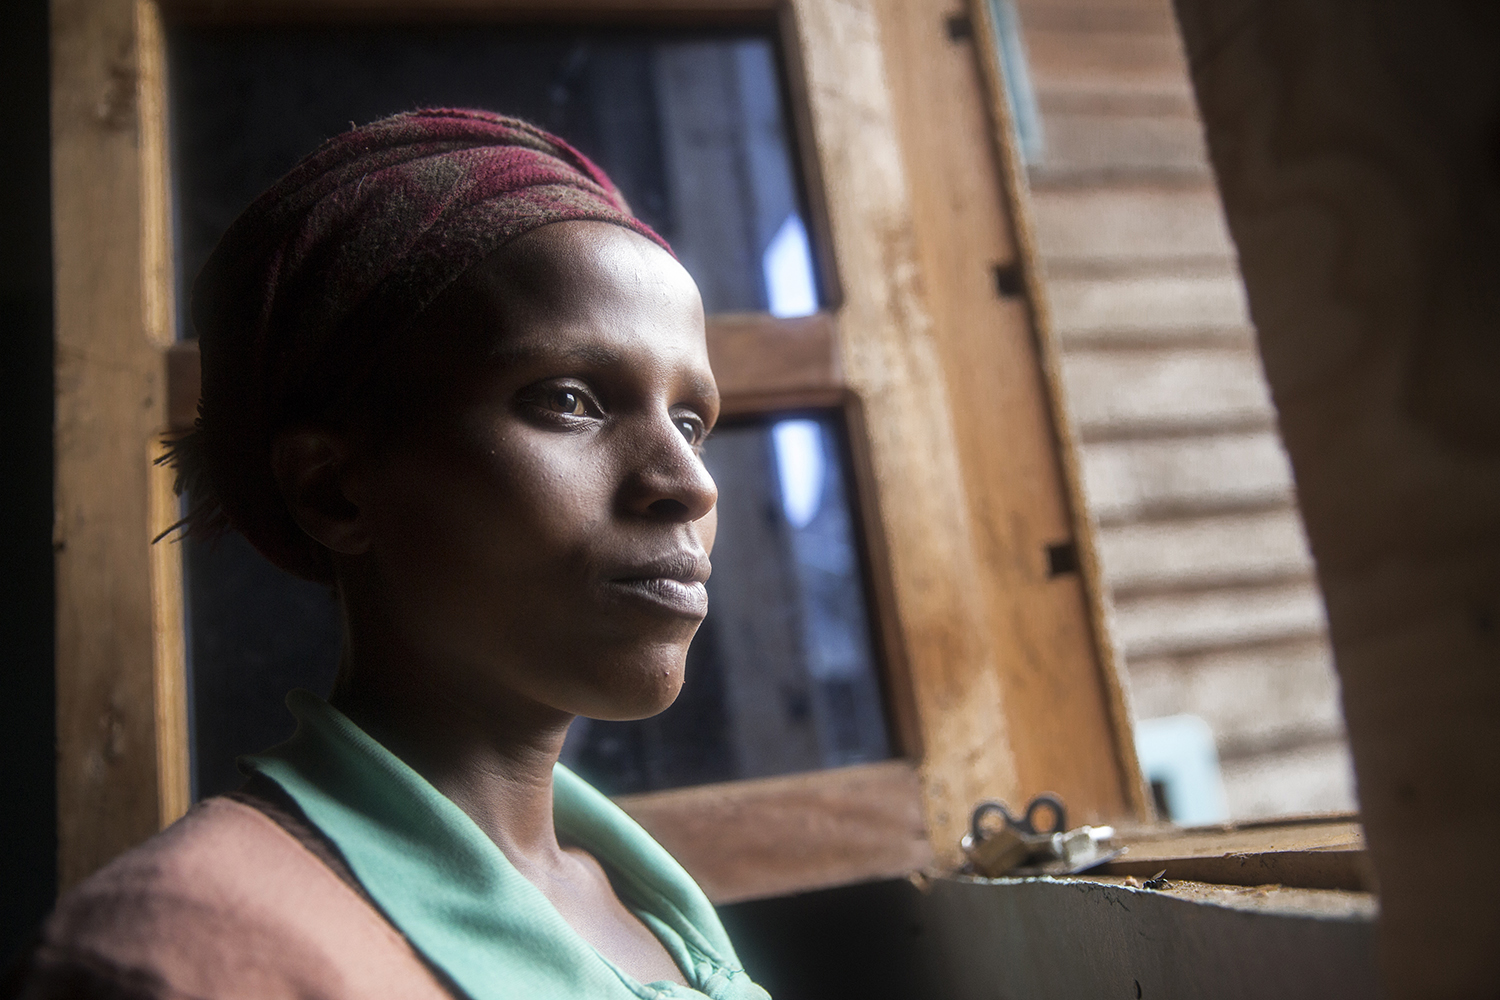 Sexual violence is a taboo in Congo